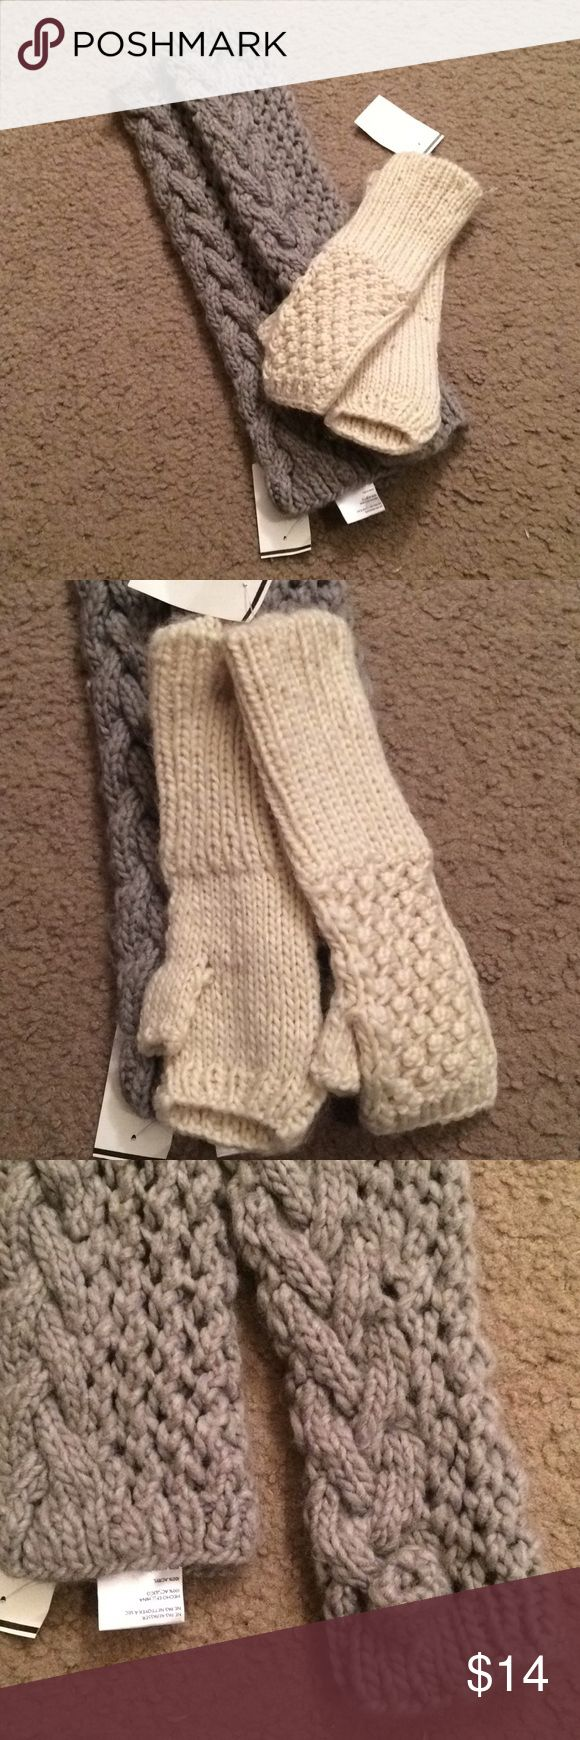 """$9 urban outfitters knit ecote fingerless gloves NWT! Originally from urban outfitters! Have label shopper discount store tags on them. Ecote brand. ✔The price in the beginning of the title of my listings is the bundle price. These prices are valid through the """"make an offer"""" feature after you create a bundle. These bundle orders must be over $15. Ask me about more details if interested.  ❌No trades ❌No holds ❌No model photos ❌No additional measurements ✔️everything pictured is included…"""